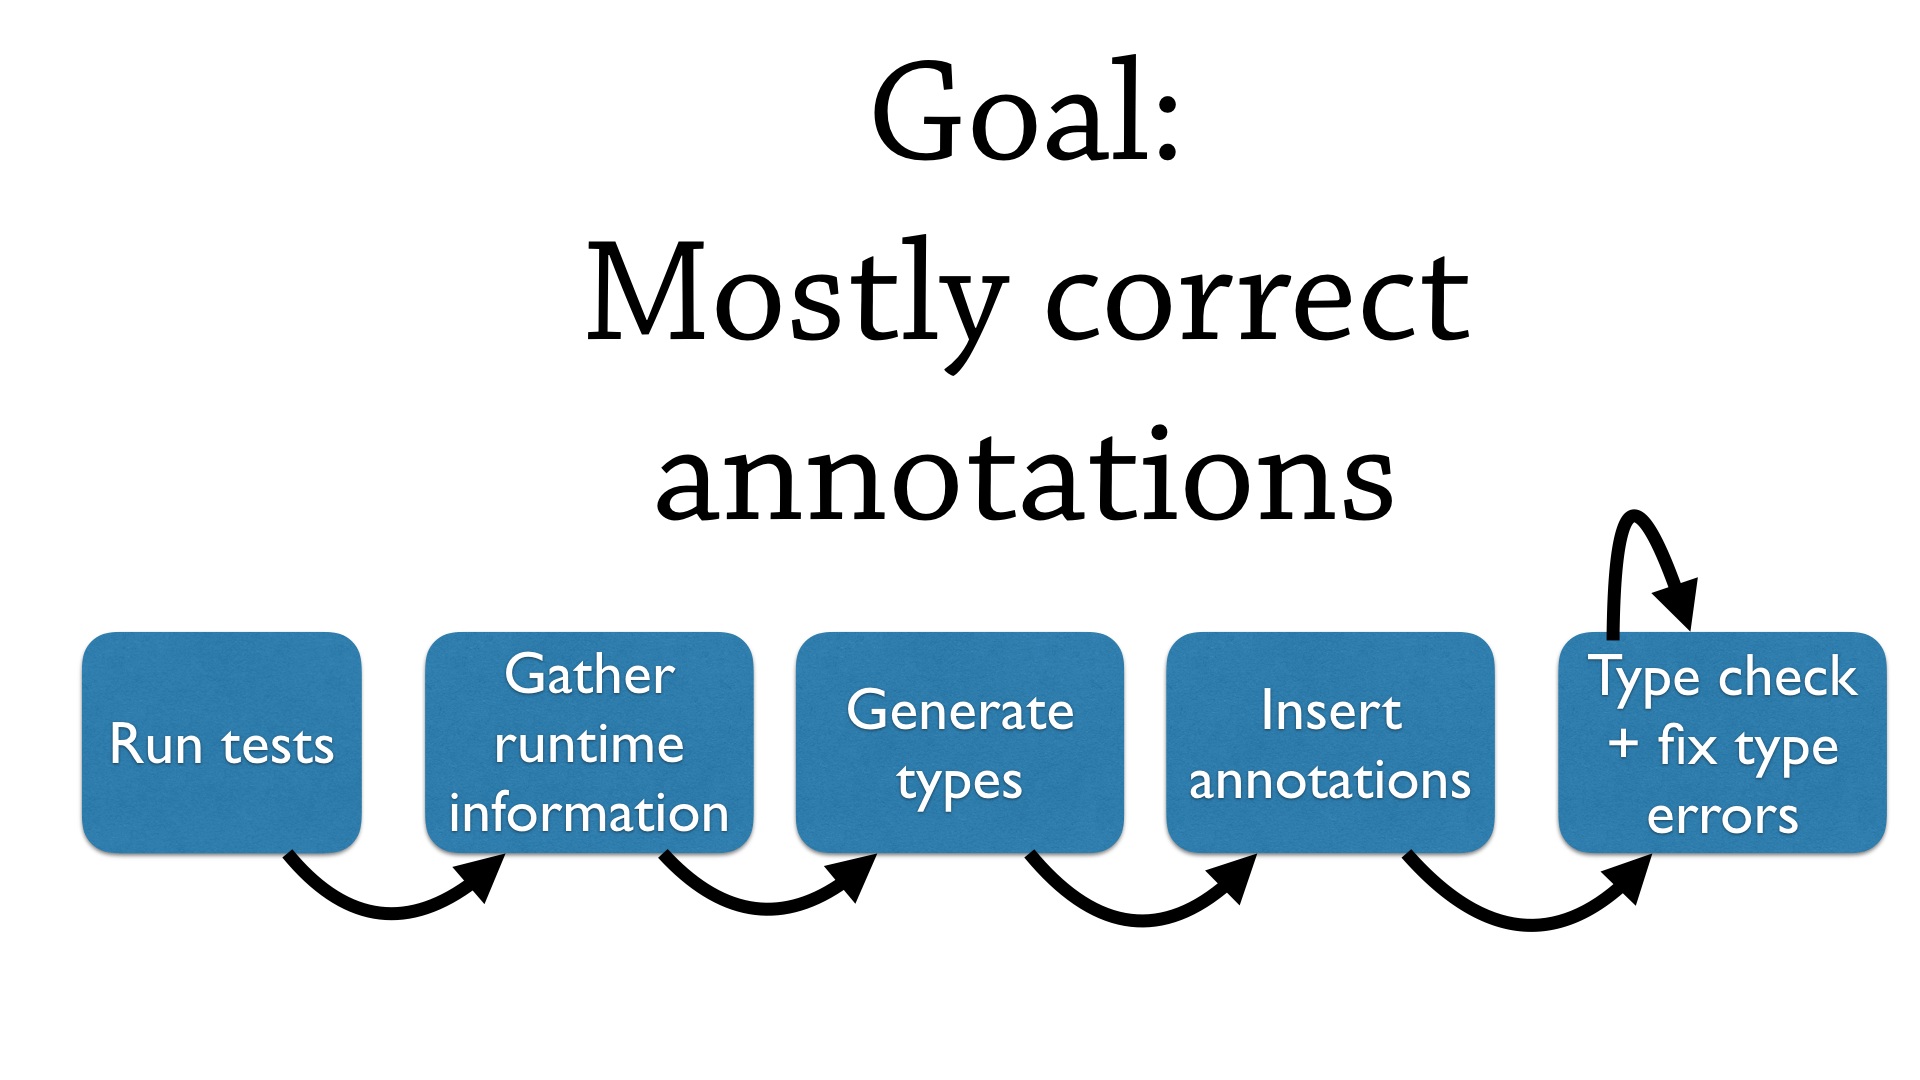 Goal: Mostly correct annotations